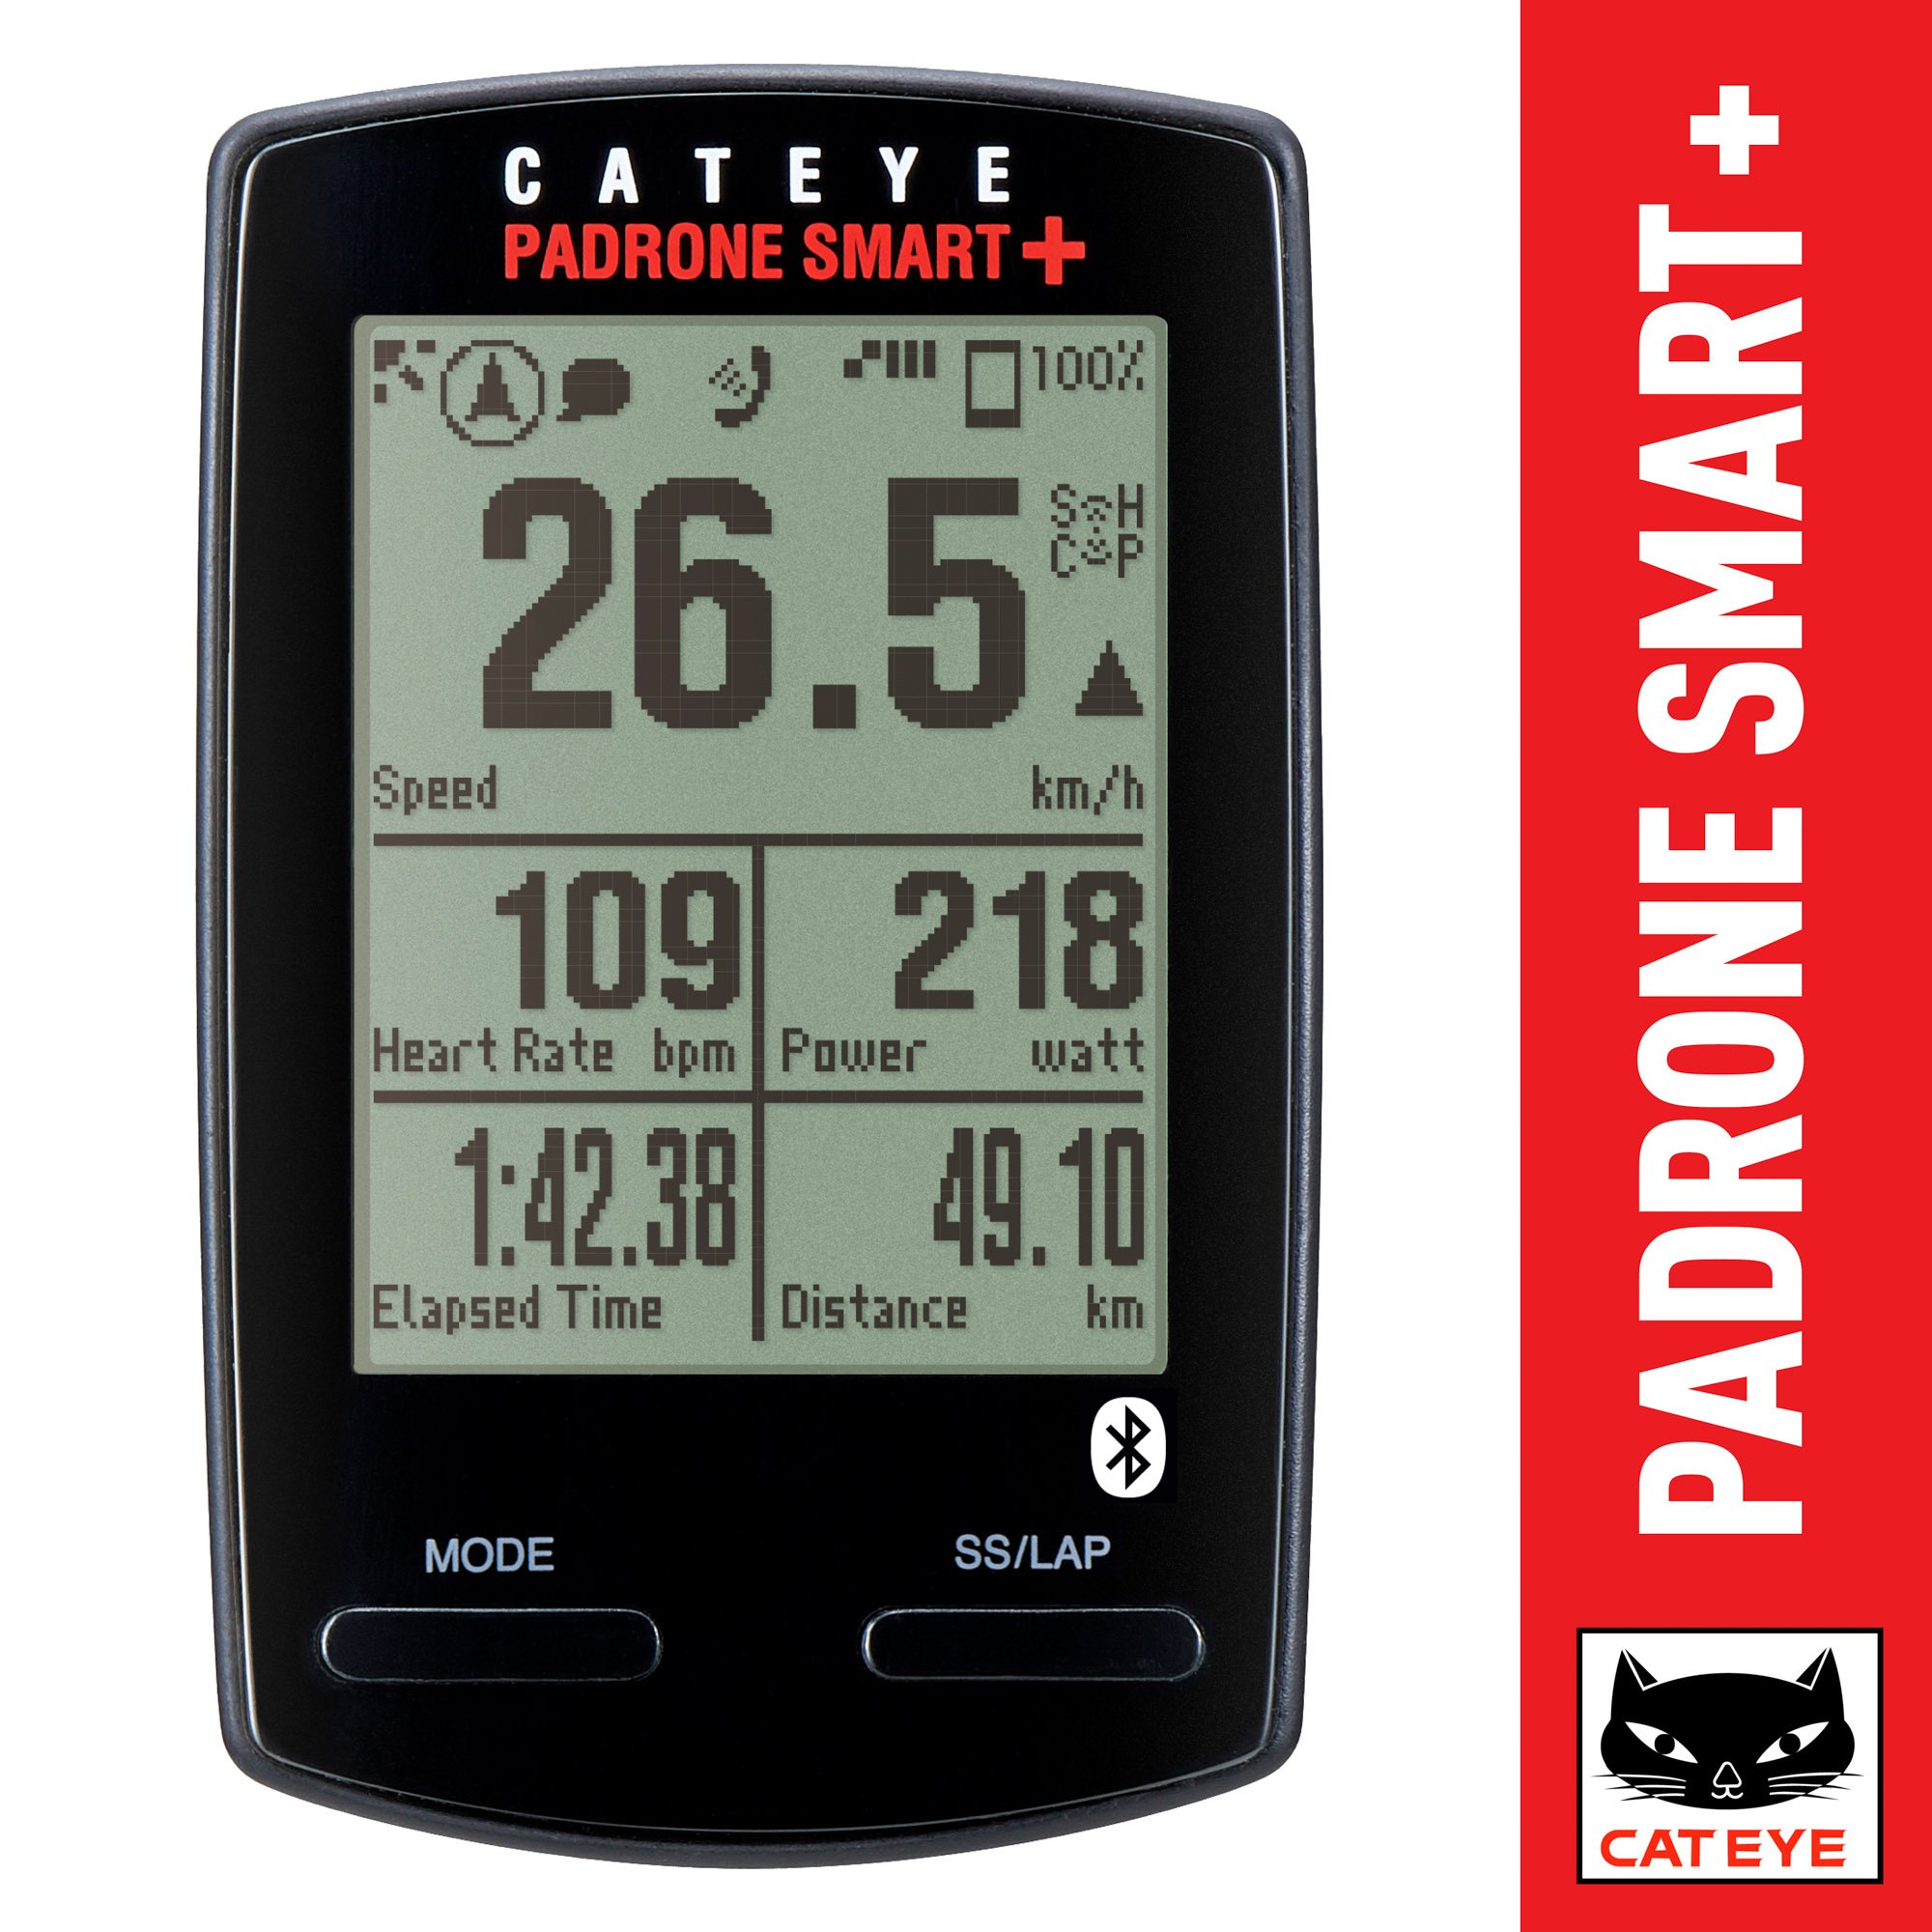 CAT EYE - Padrone Smart Plus Wireless Bike Computer, Double